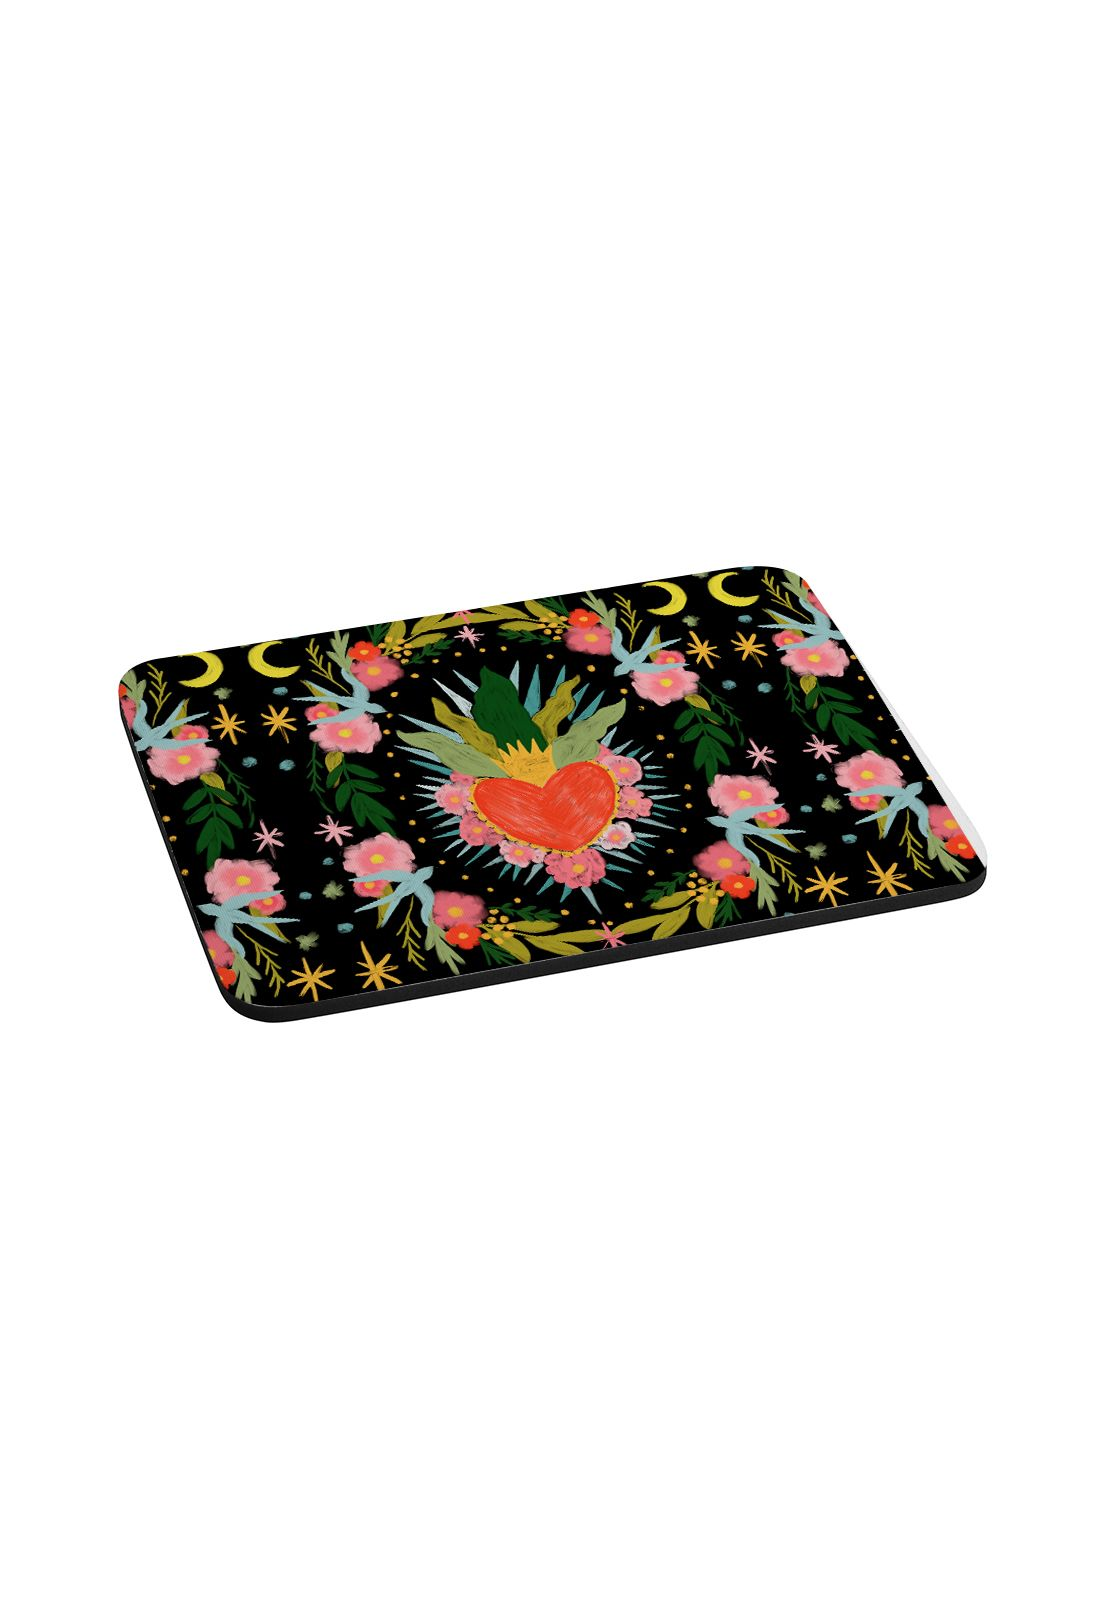 Mousepad Milagro Mexican Black